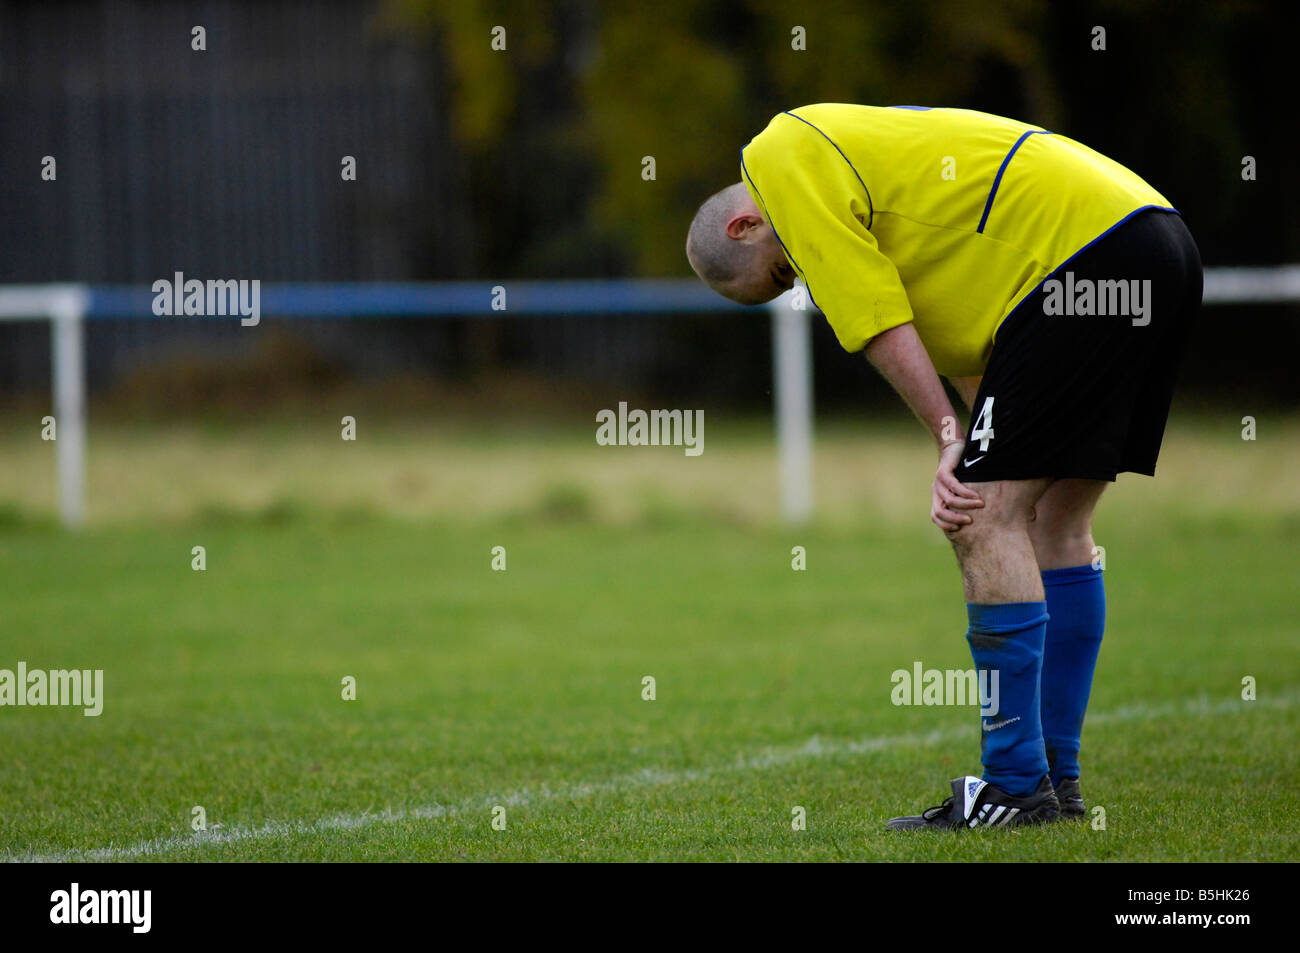 goalkeeper bends over in despair after his team has conceded a goal - Stock Image